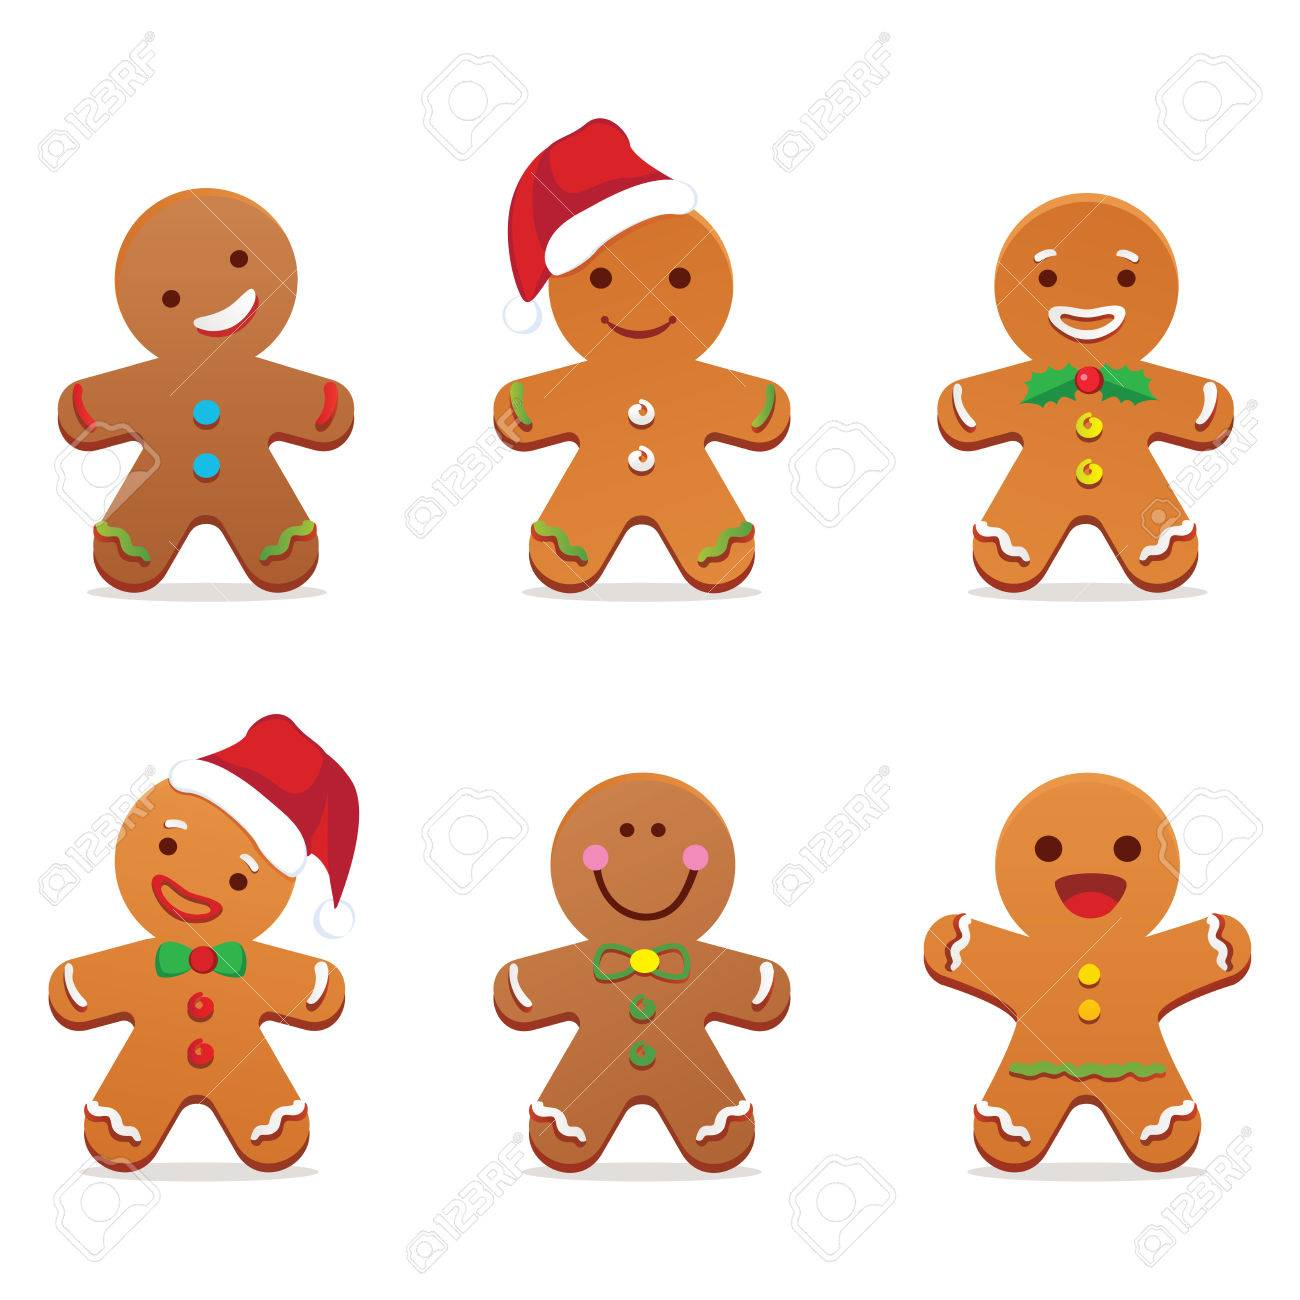 Gingerbread man royalty free cliparts vectors and stock gingerbread man stock vector 48629931 voltagebd Image collections